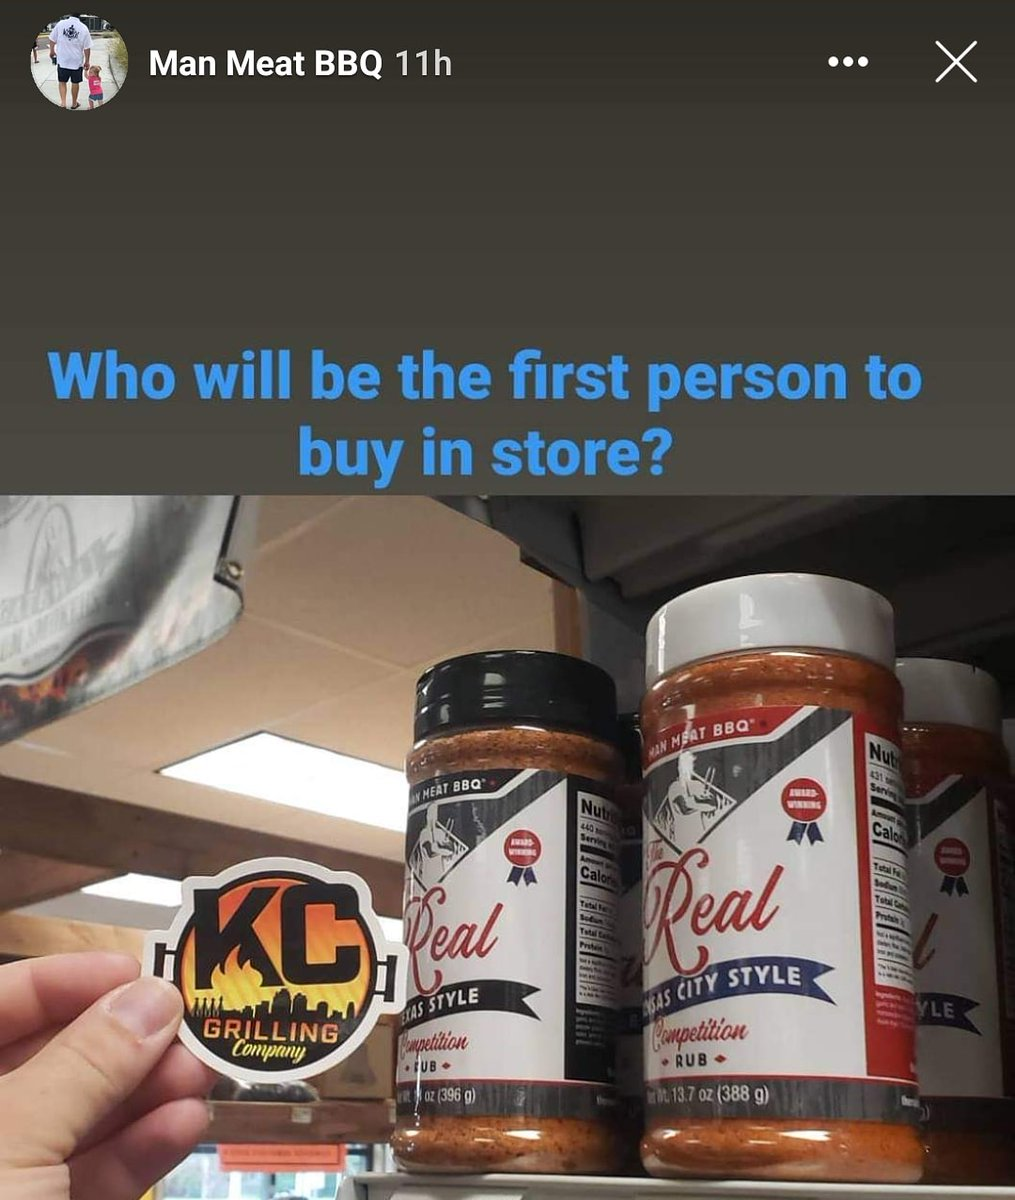 """Its on today at @kcgrillingco. The """"Rub Release"""" Party for @Therealmanmeat1 new rubs!  Come out & try some BBQ samples & pick up these new rubs from the current @KCBBQSOCIETY No. 1 team in the world!pic.twitter.com/LhZhOMffAA"""